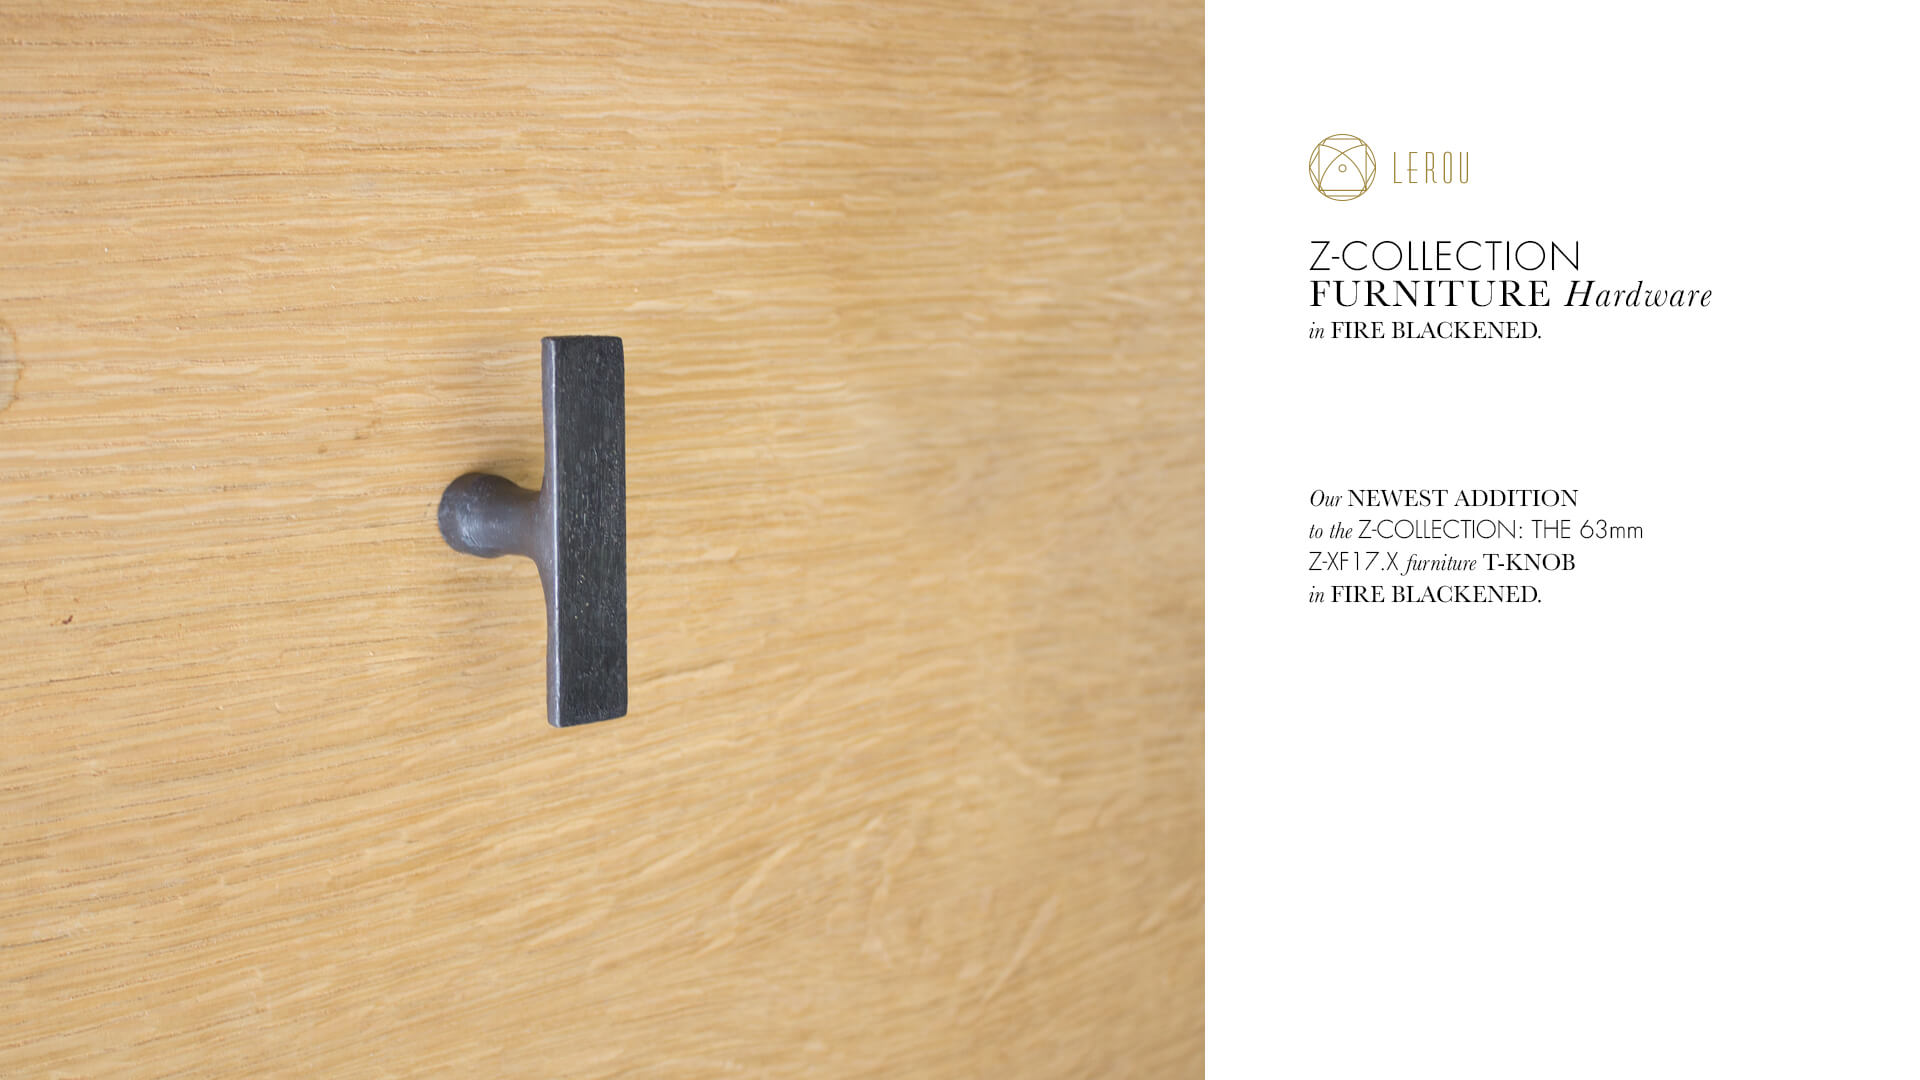 Lerou Z-Collection: Furniture Hardware in Fire Blackened Finish. Lerou Z-Collection: Meubelbeslag in Vuurgezwart.